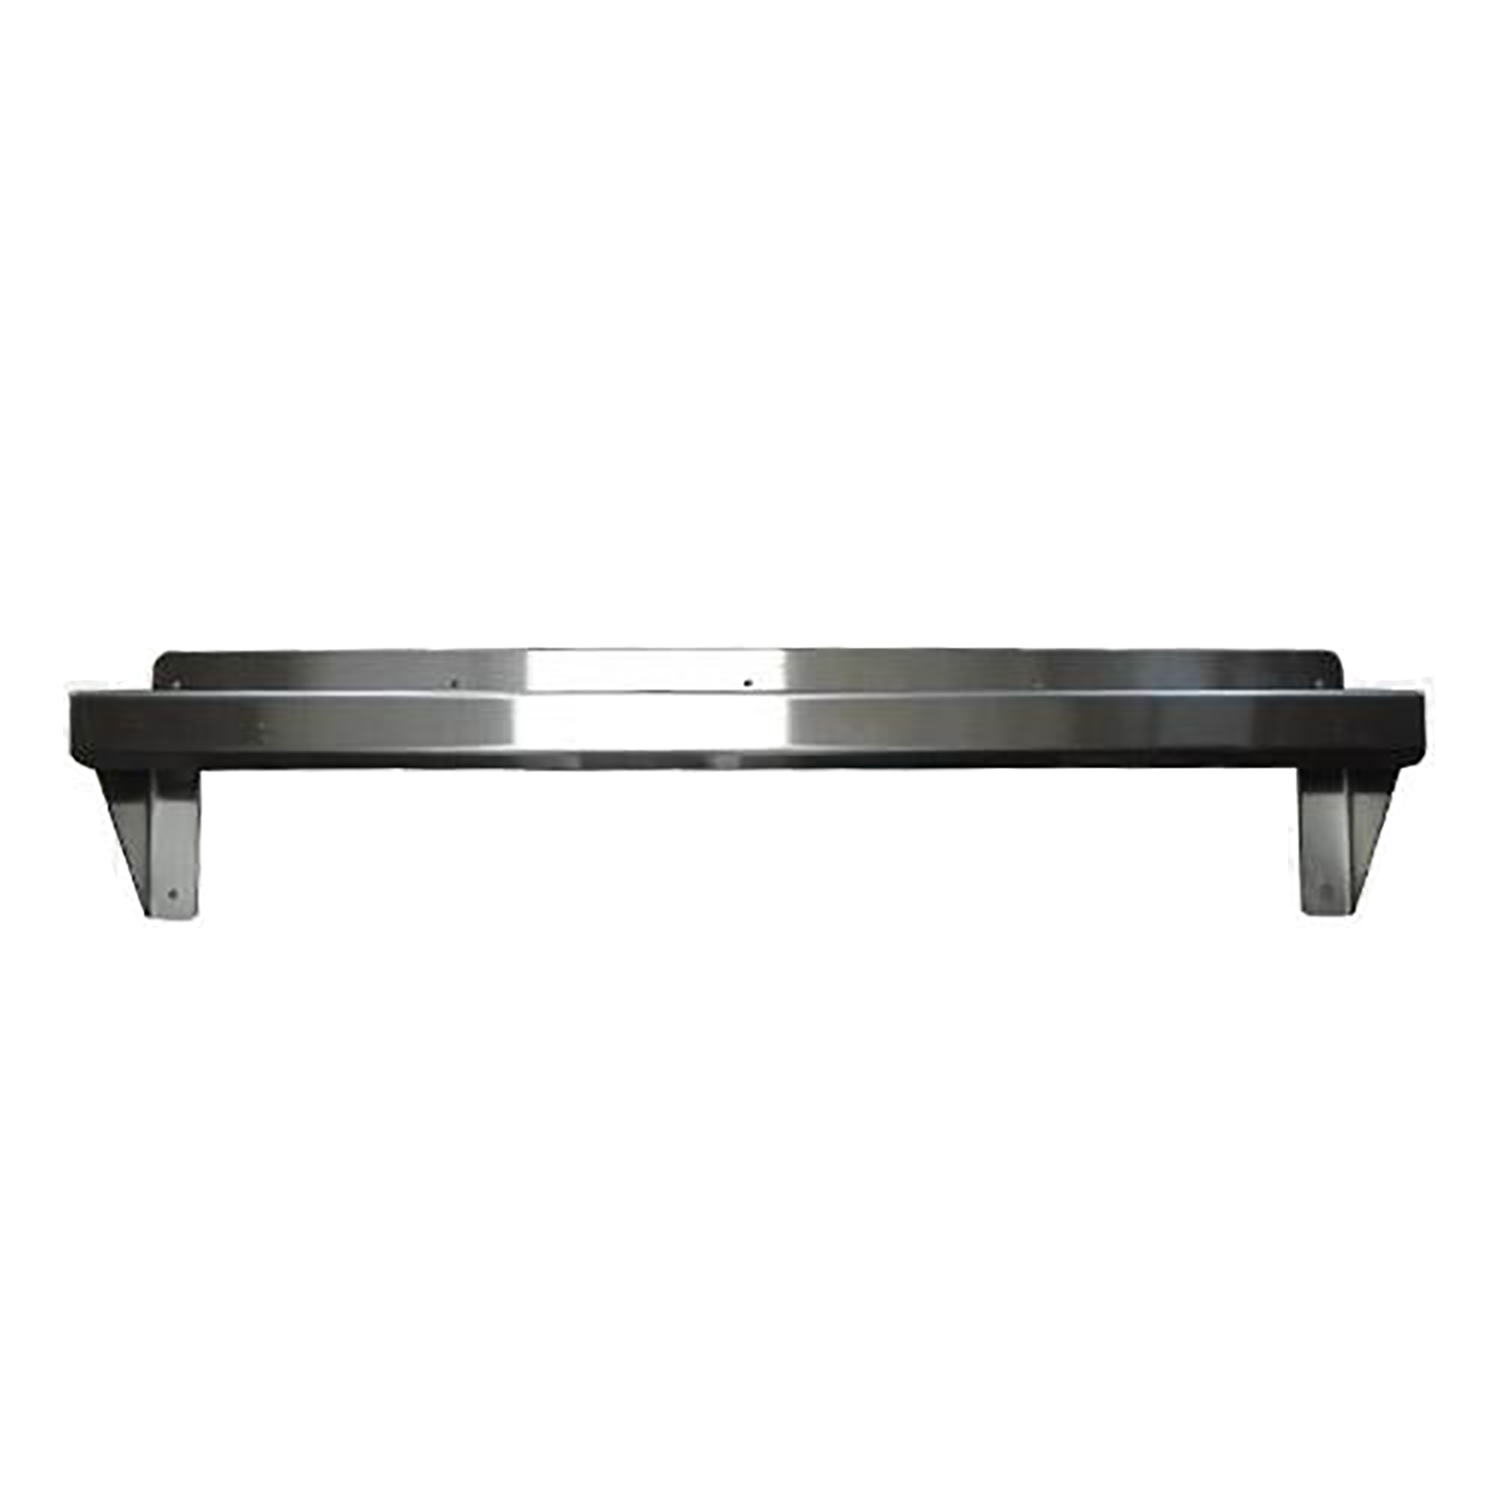 Clearance - Avante Stainless Steel Wall Shelves